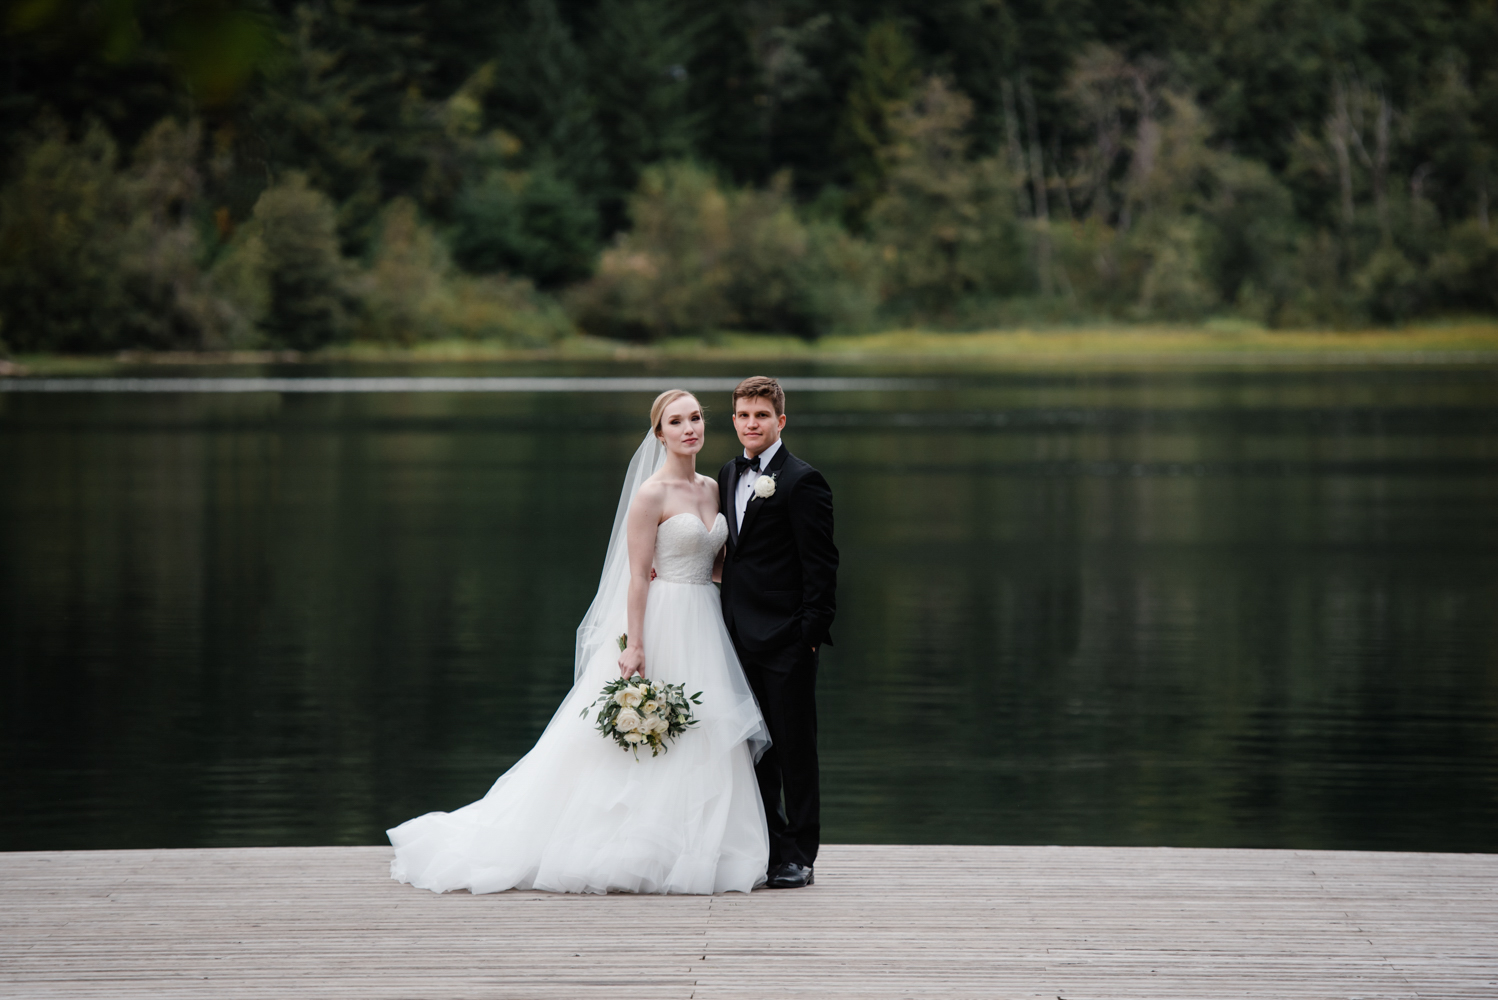 Nitalake wedding85.jpg